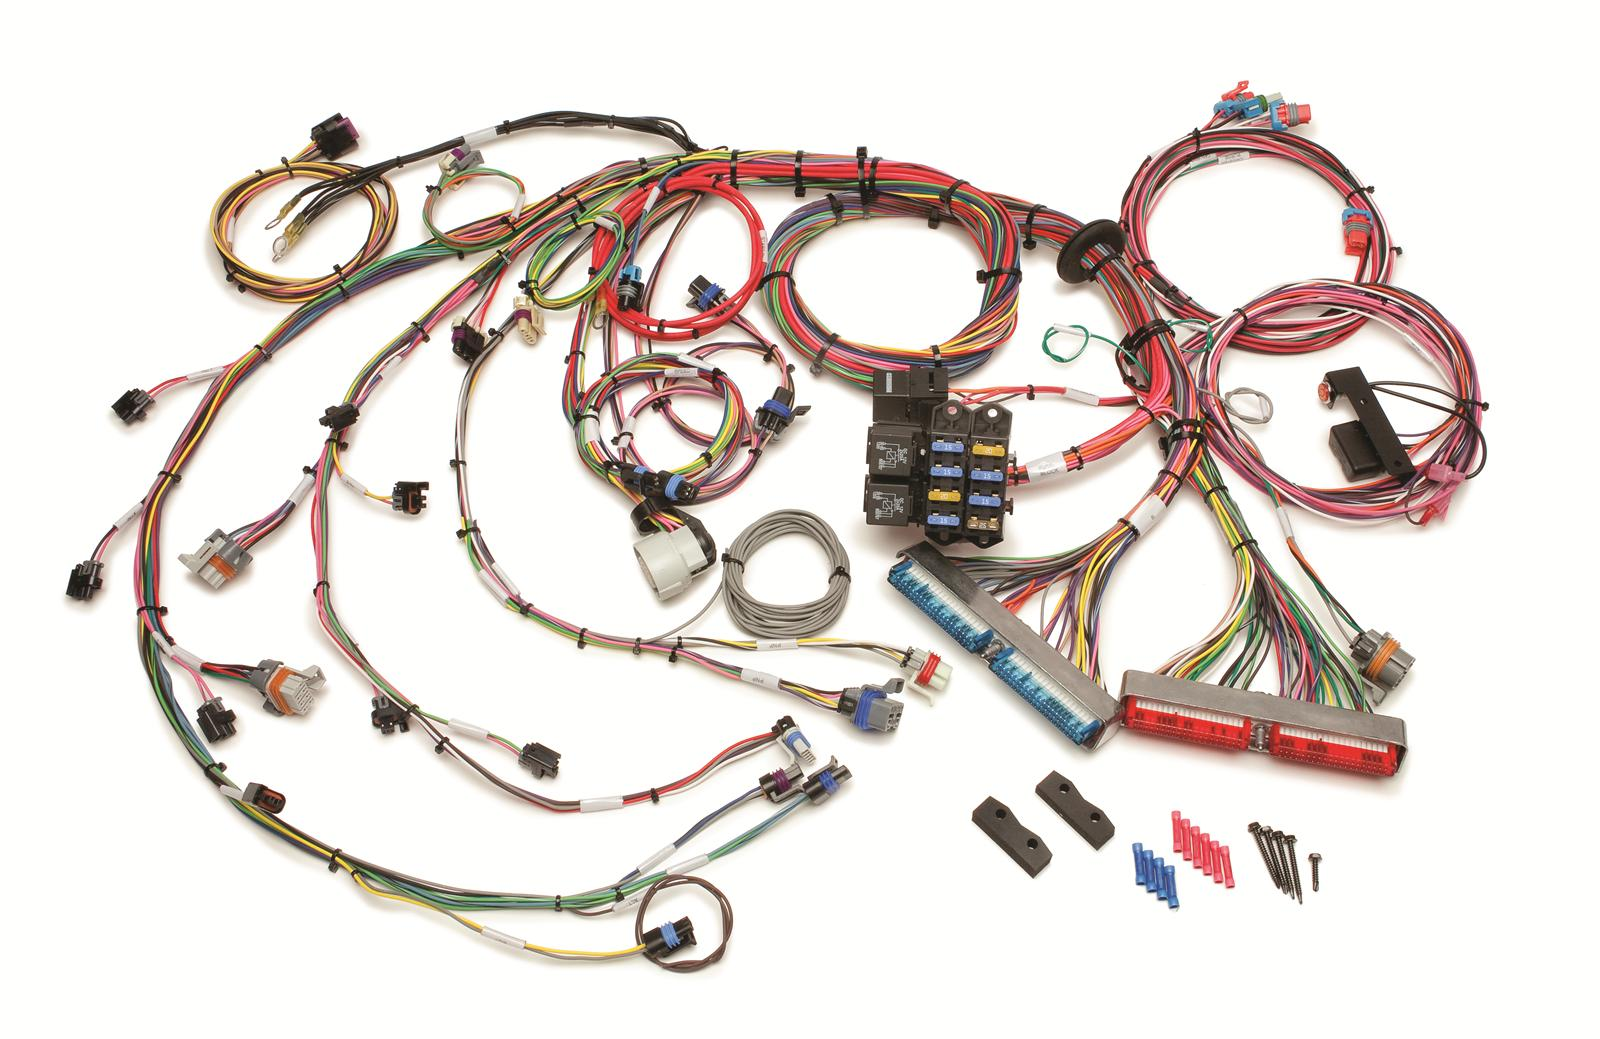 prf 60218_xl chevy wiring harness parts accessories ebay painless wiring 1985 Chevy Truck Wiring Harness at bayanpartner.co